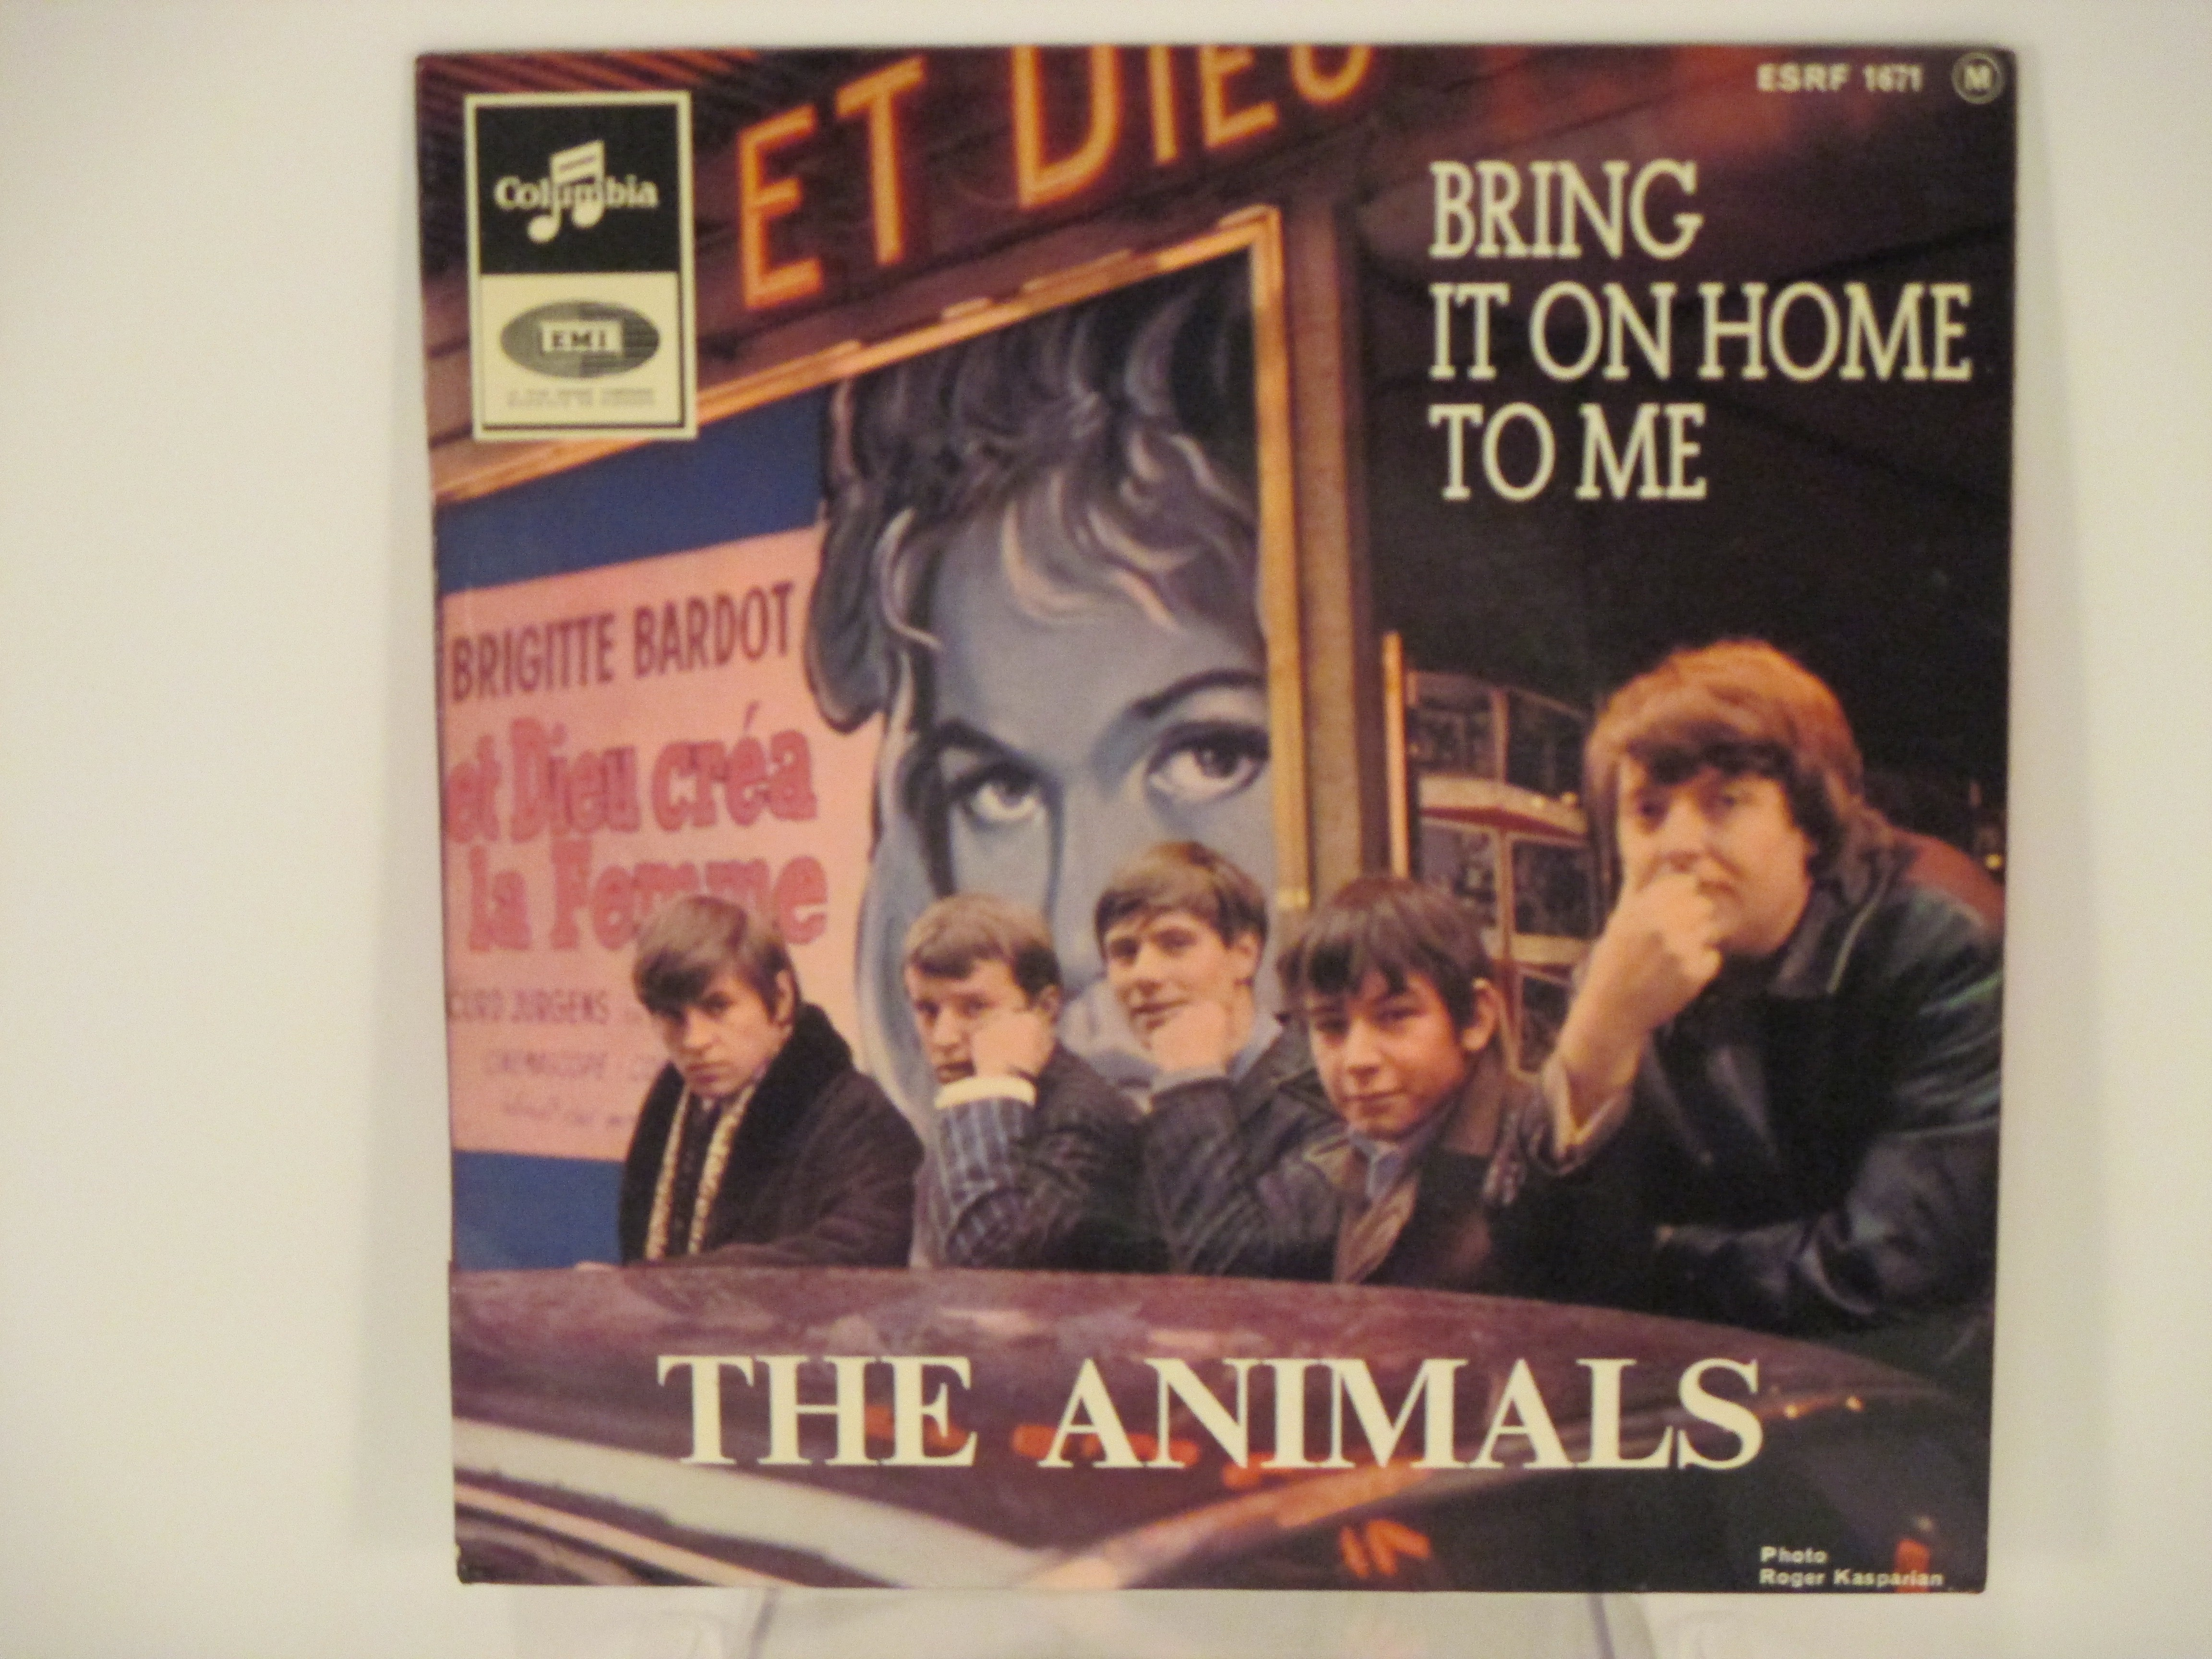 ANIMALS : (EP)  Bring it on home to me / Hallelujah! I love her so / For miss Caulker / Mess around